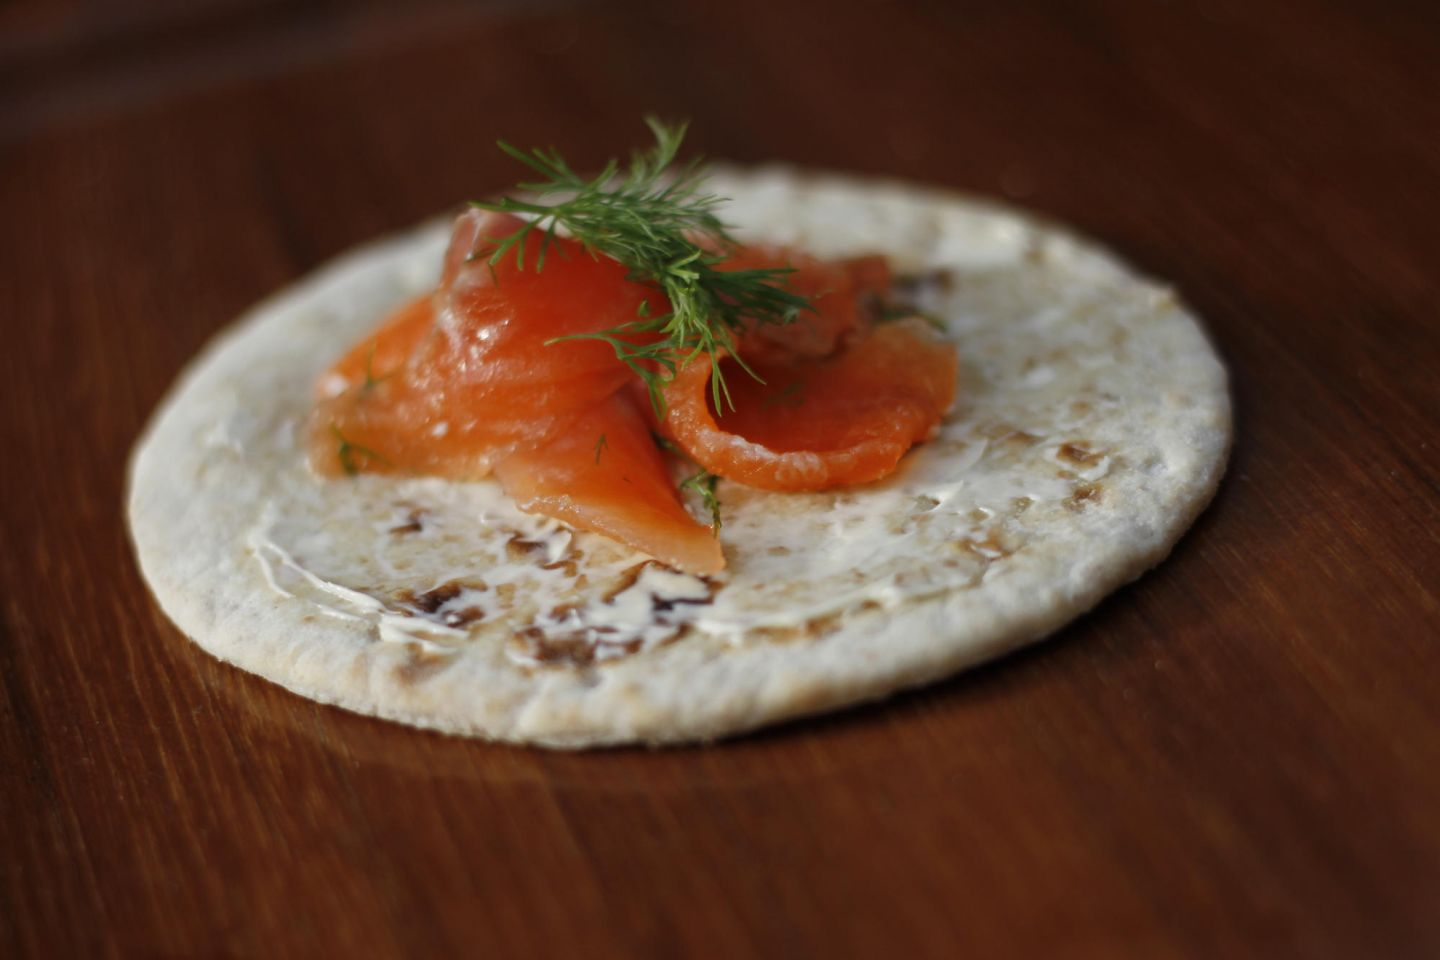 Barley flatbread from Lapland